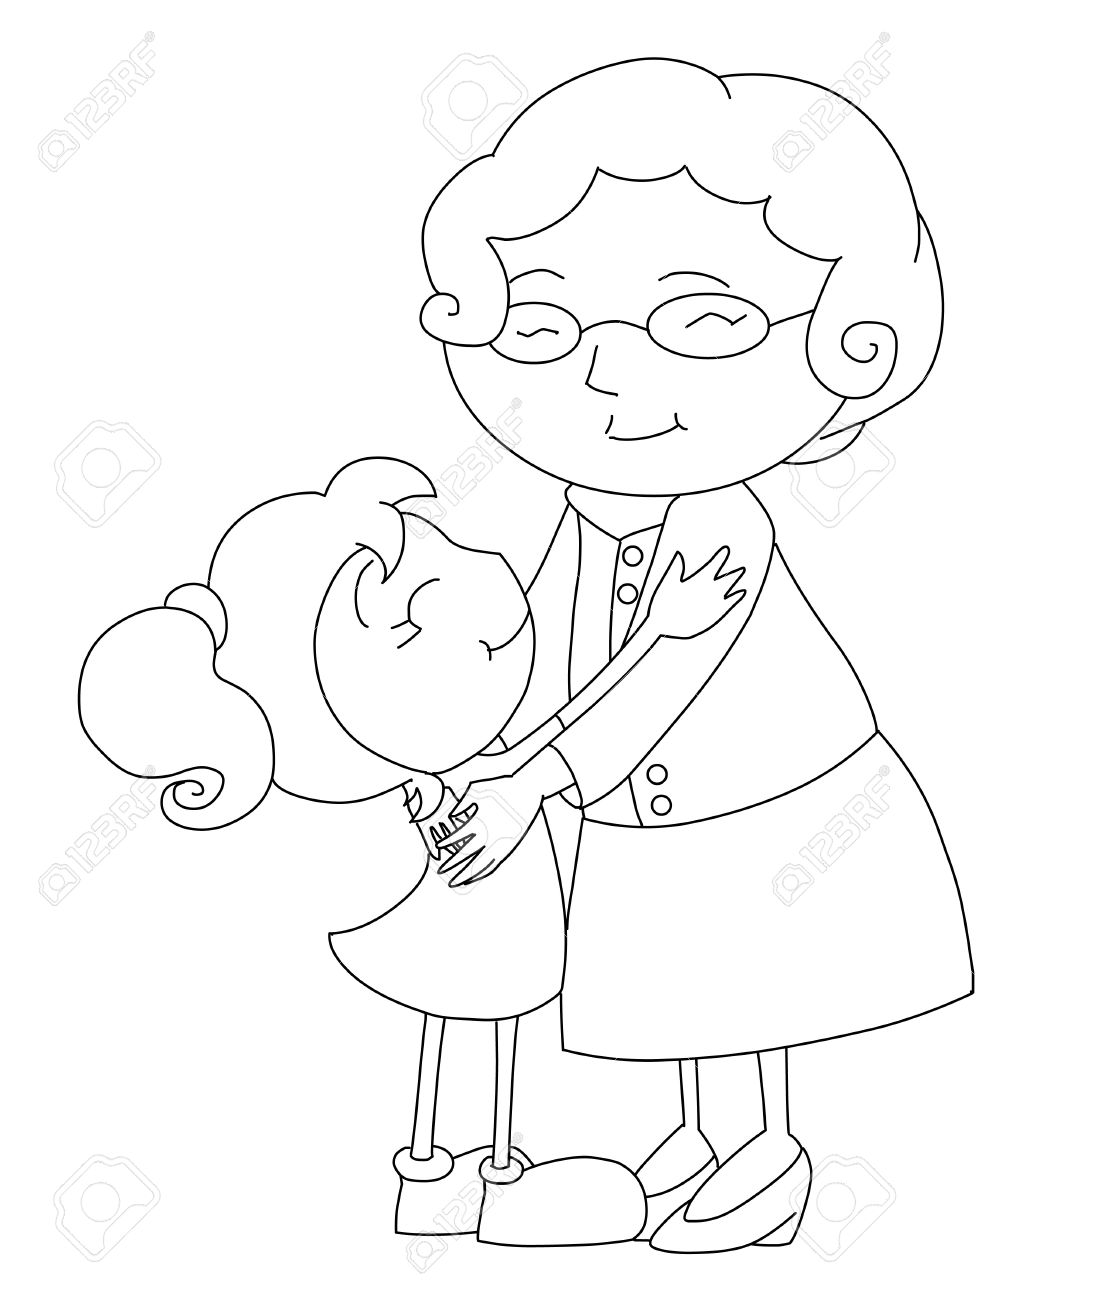 1109x1300 Grandma Stock Photo, Picture And Royalty Free Image. Image 11034828.